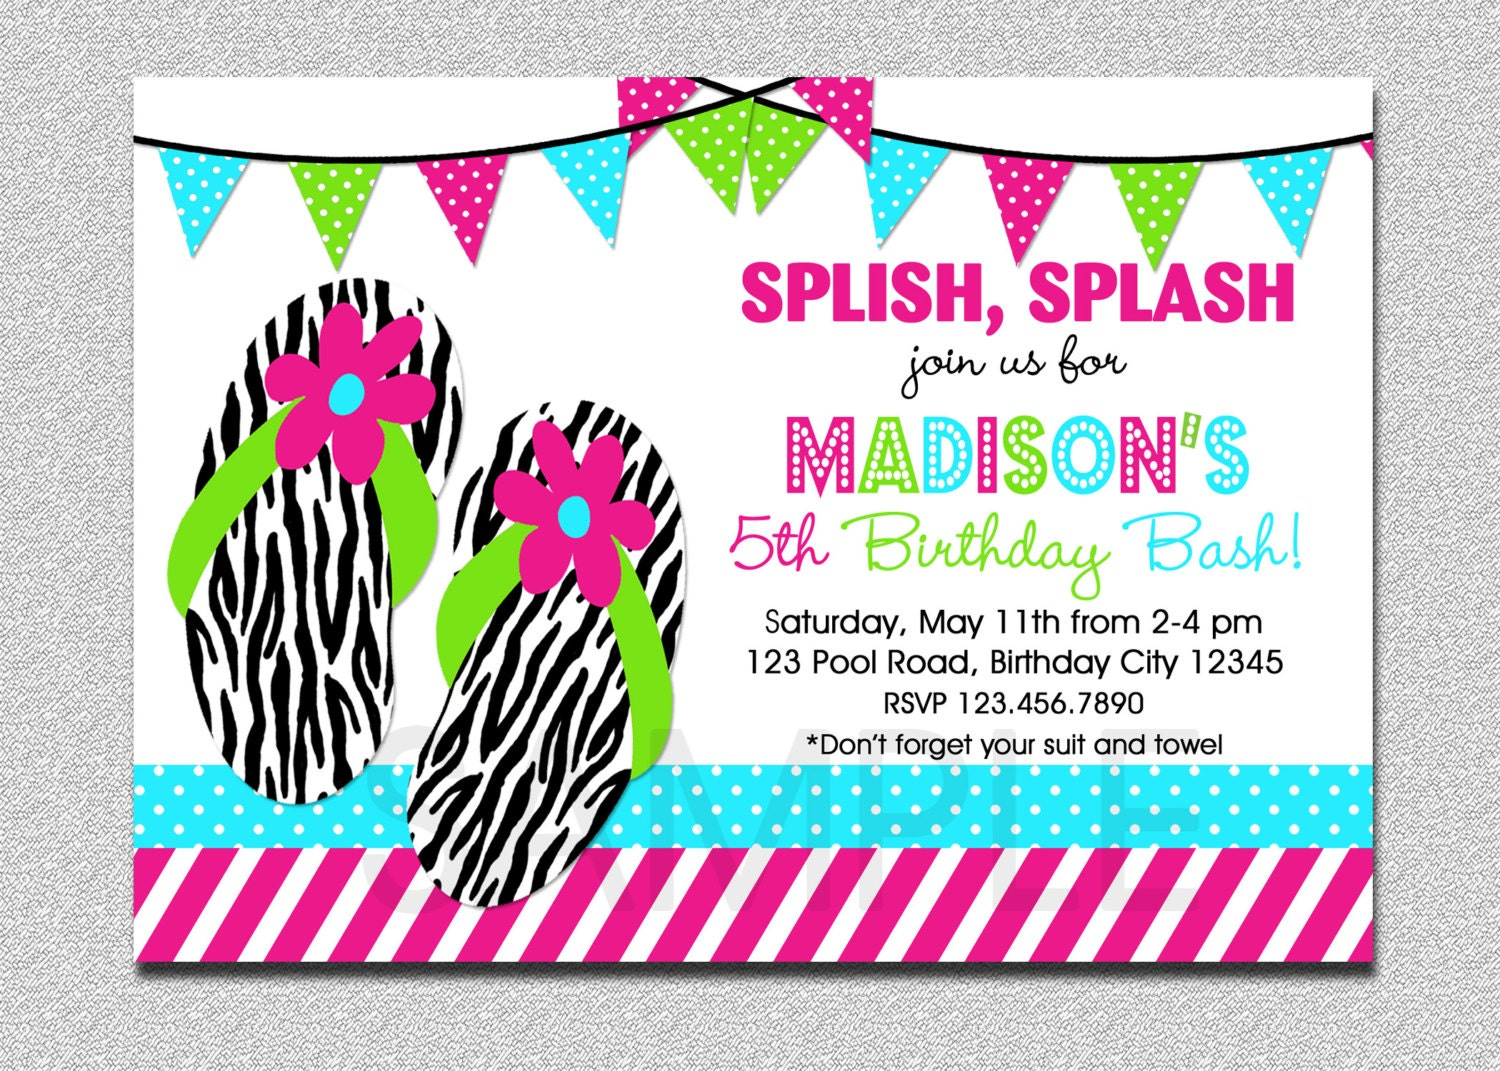 Flip Flop Birthday Invitation Splish Splash Pool Party – Pool Party Invitations for Girls